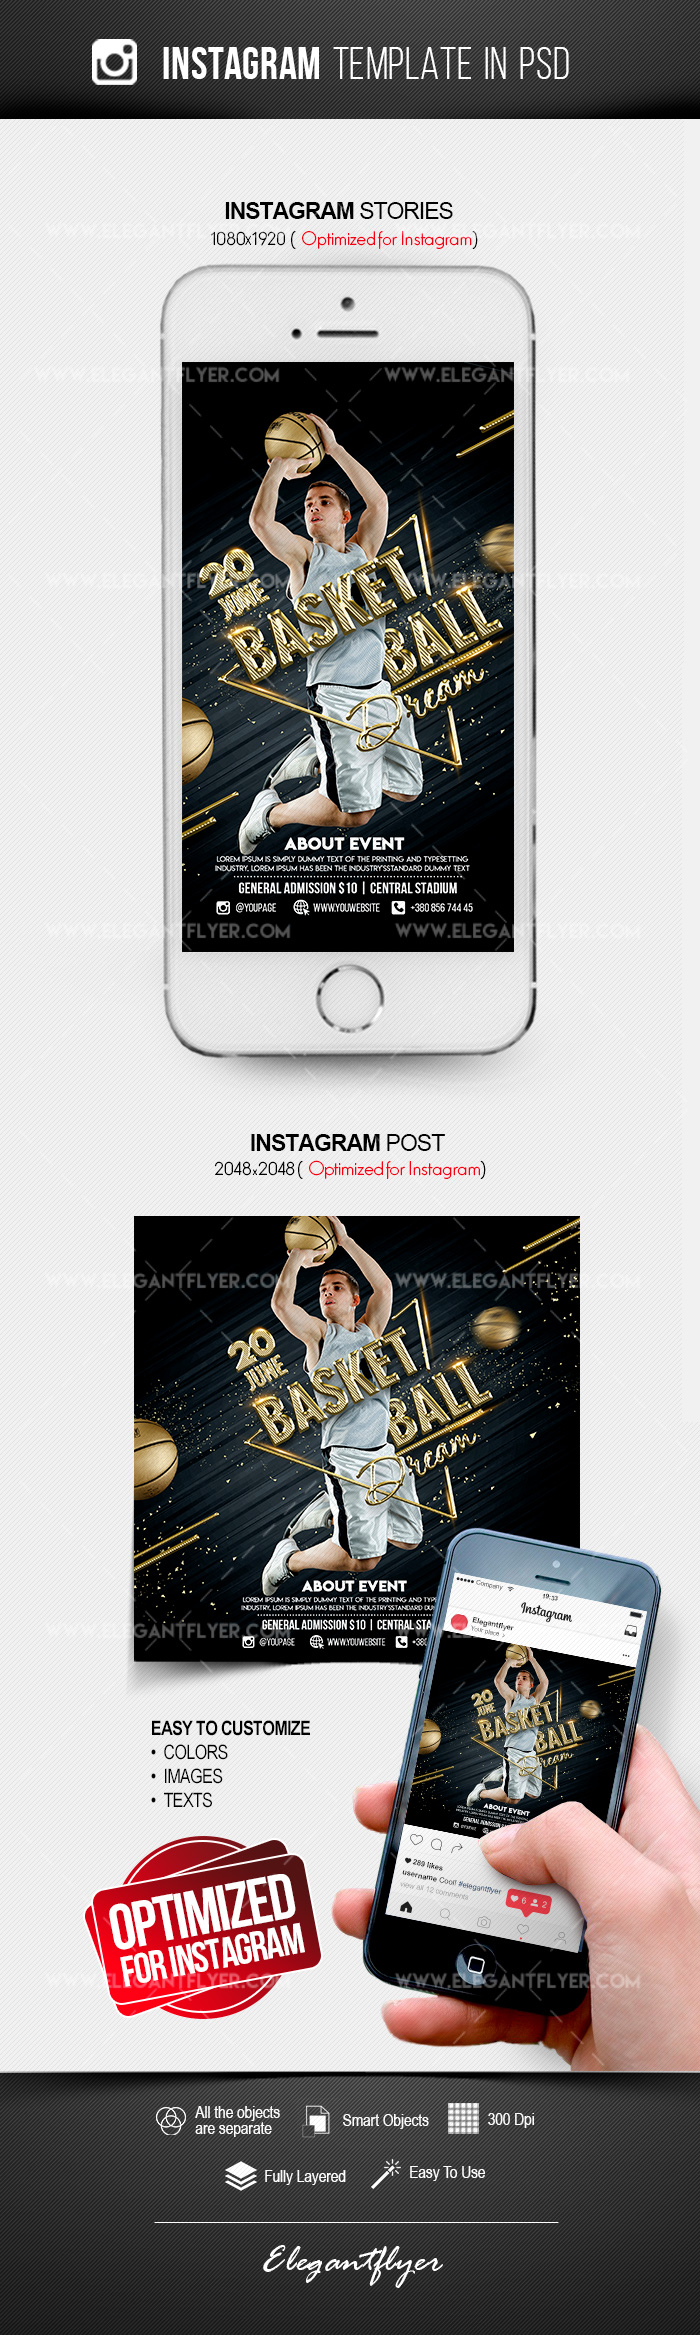 Basketball Dream – Instagram Stories Template in PSD + Post Templates